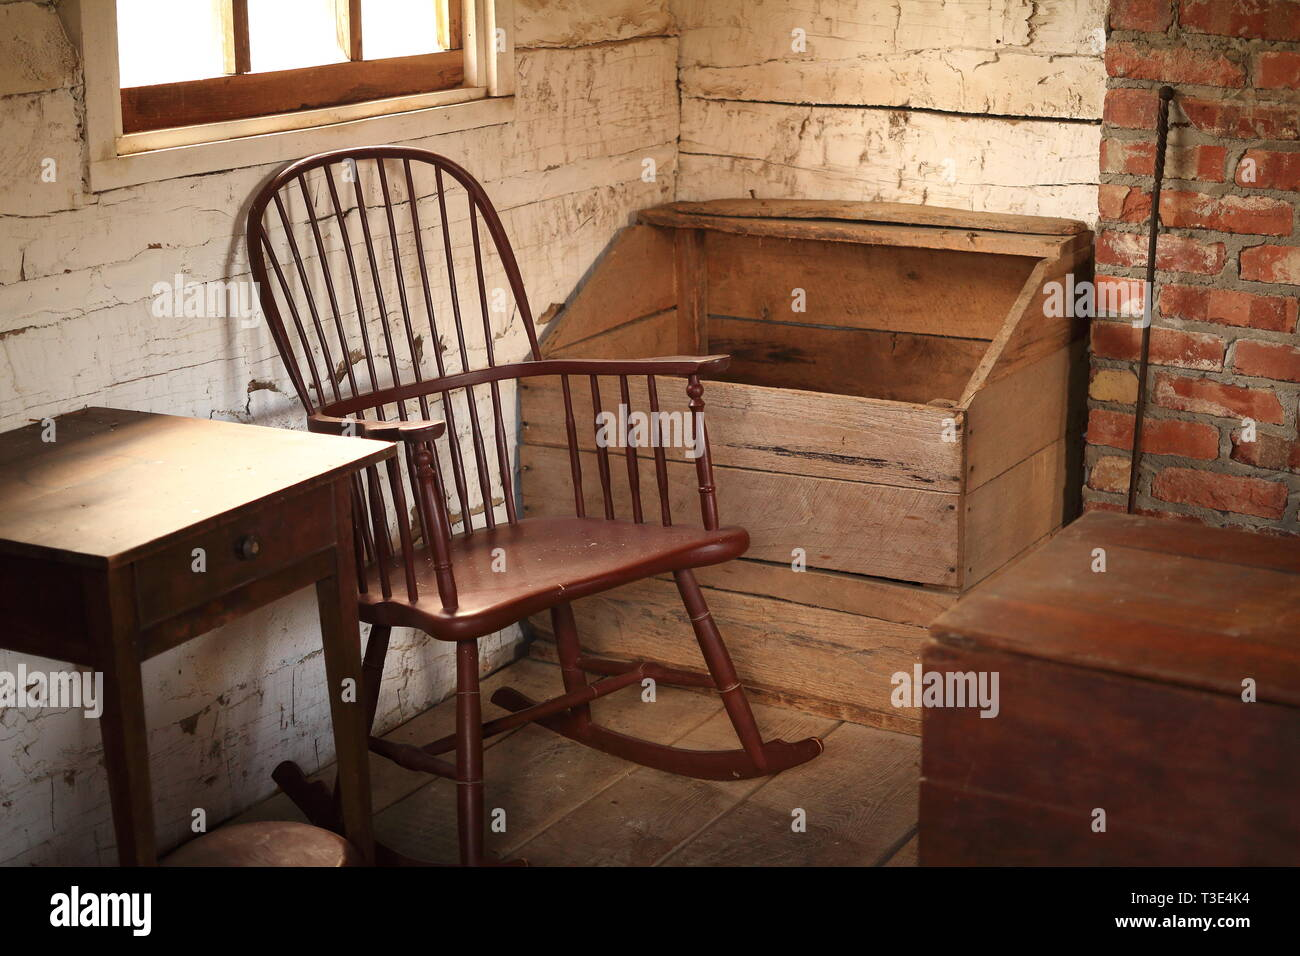 Interior of an American Pioneer Log Cabin - Stock Image